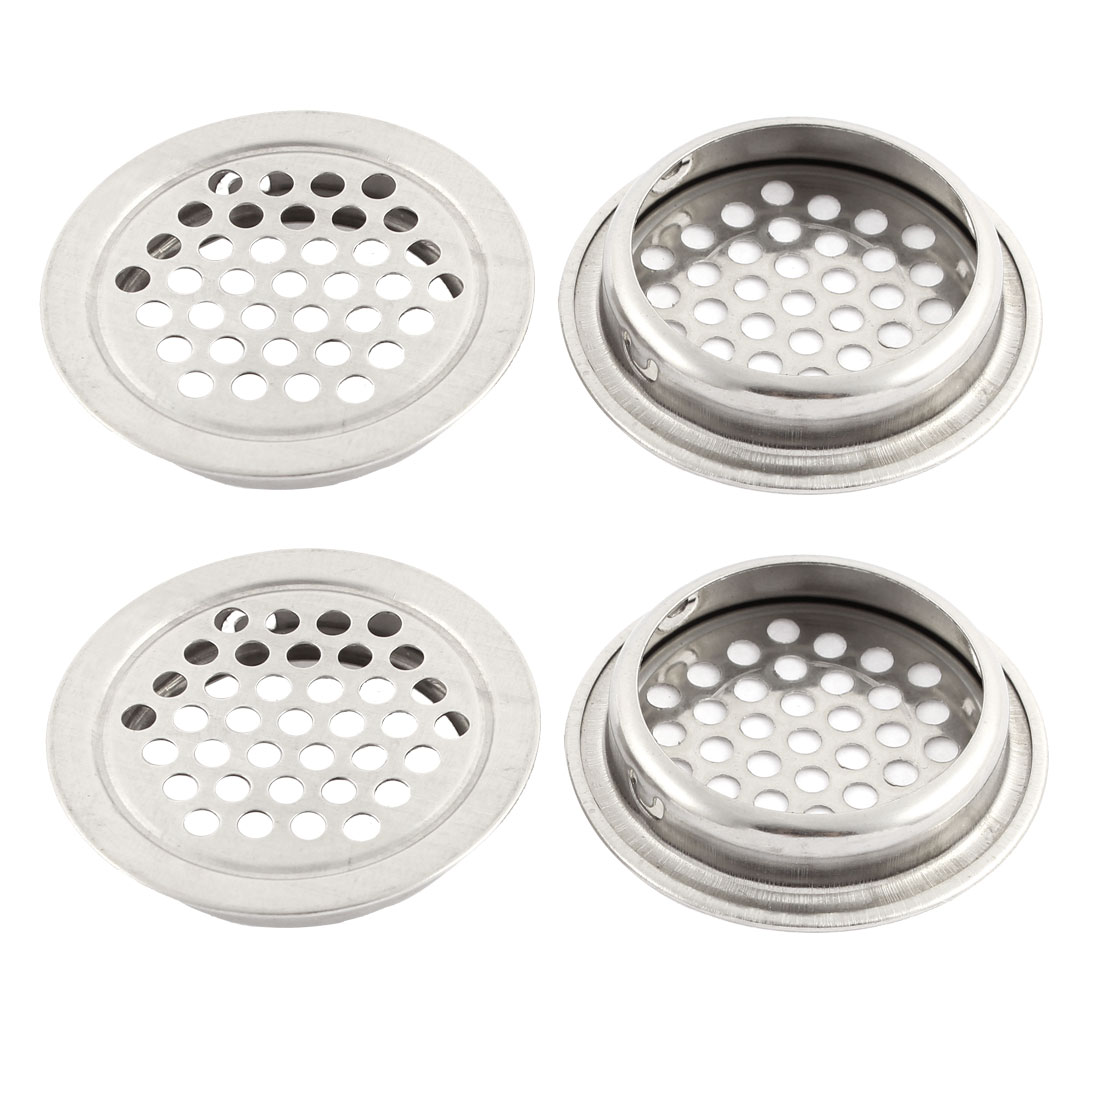 4Pcs 42 x 35mm Round Stainless Steel Perforated Mesh Air Vents Louvers